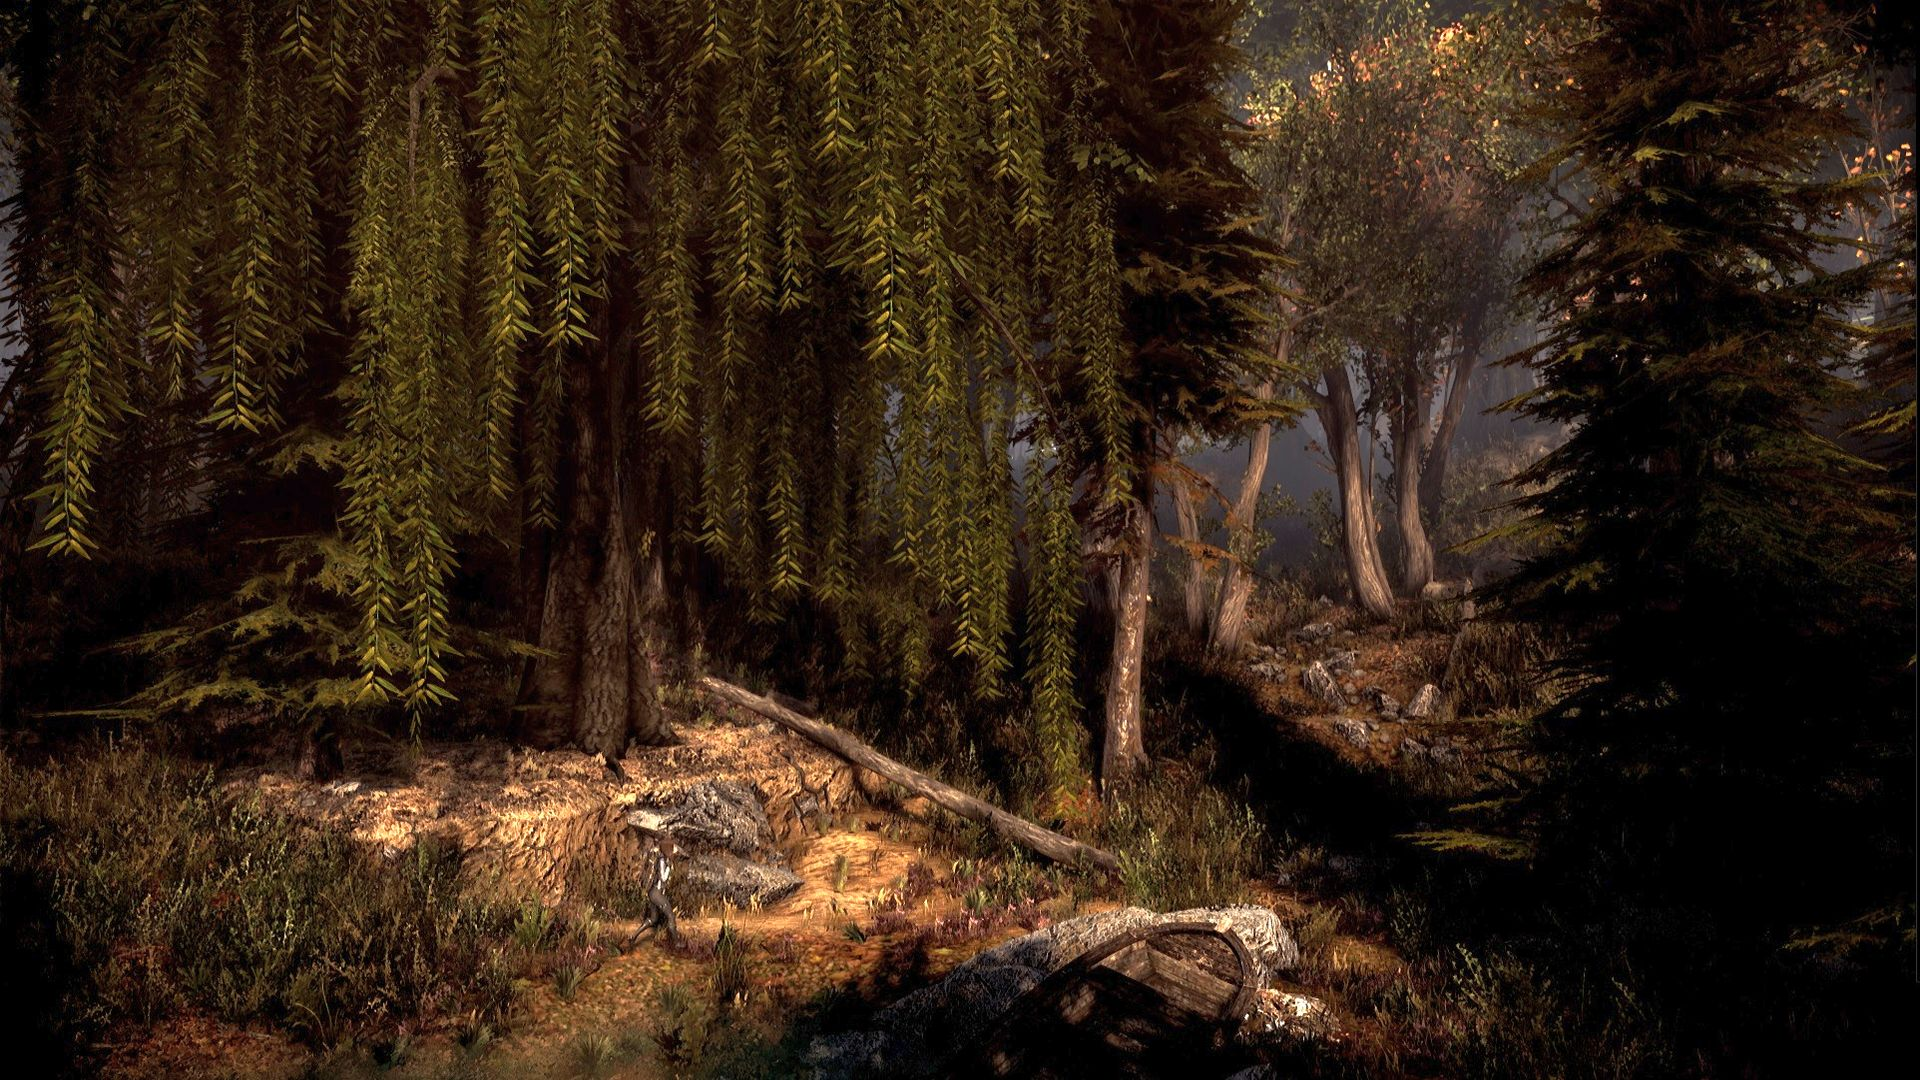 Fallout 76 players are running a music festival to get trees planted in inner cities